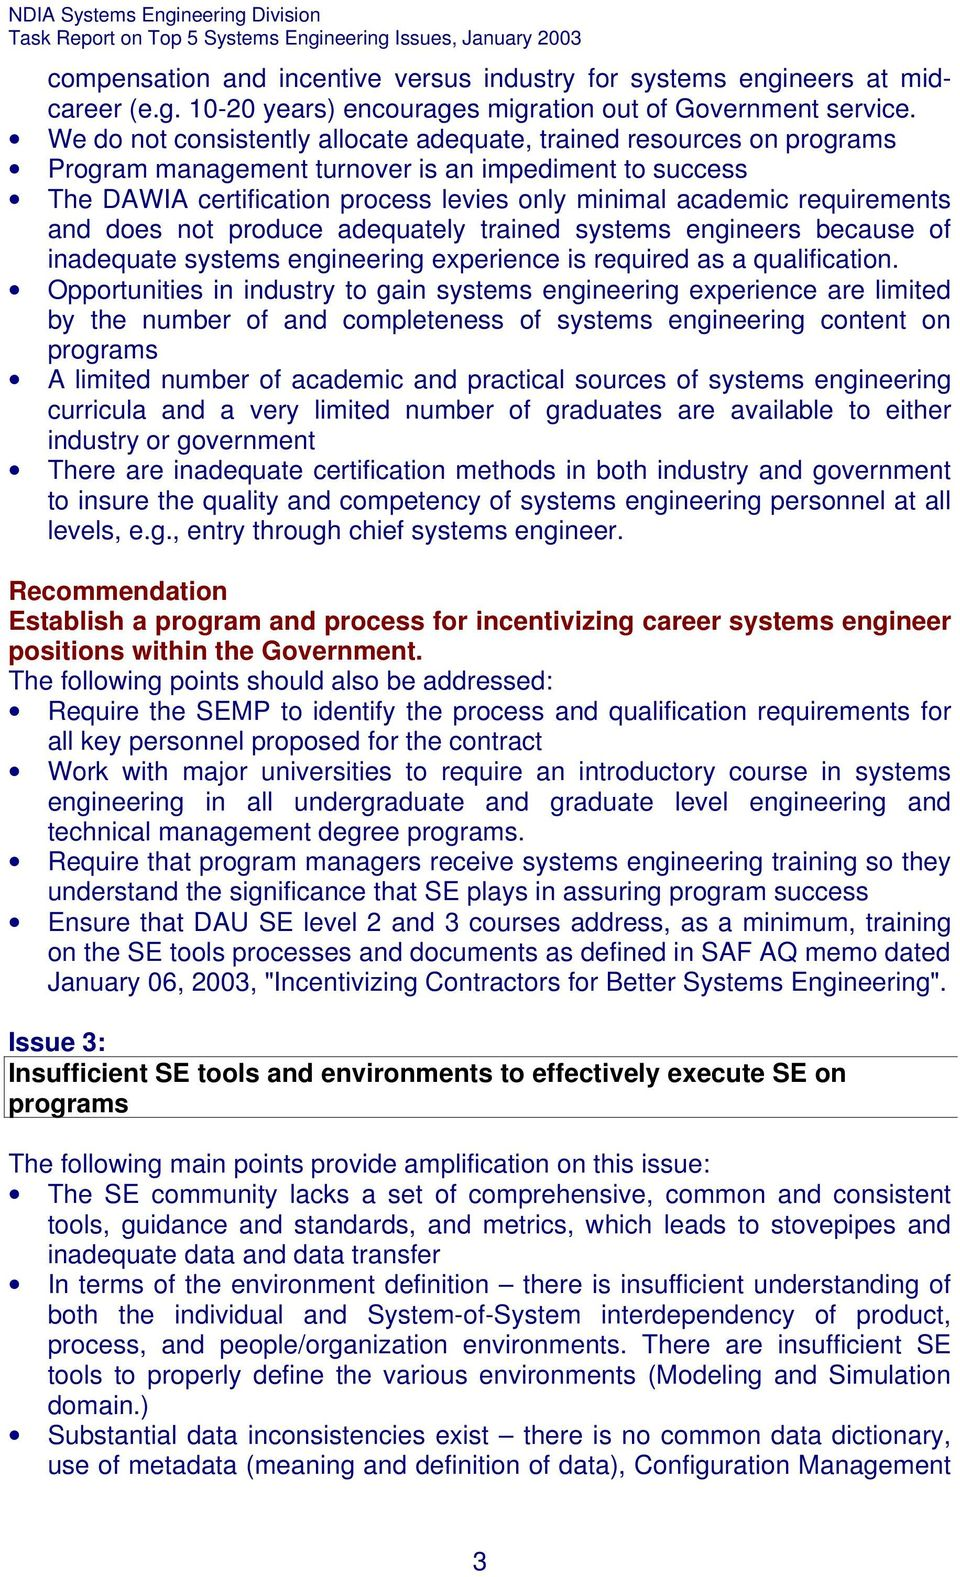 requirements and does not produce adequately trained systems engineers because of inadequate systems engineering experience is required as a qualification.